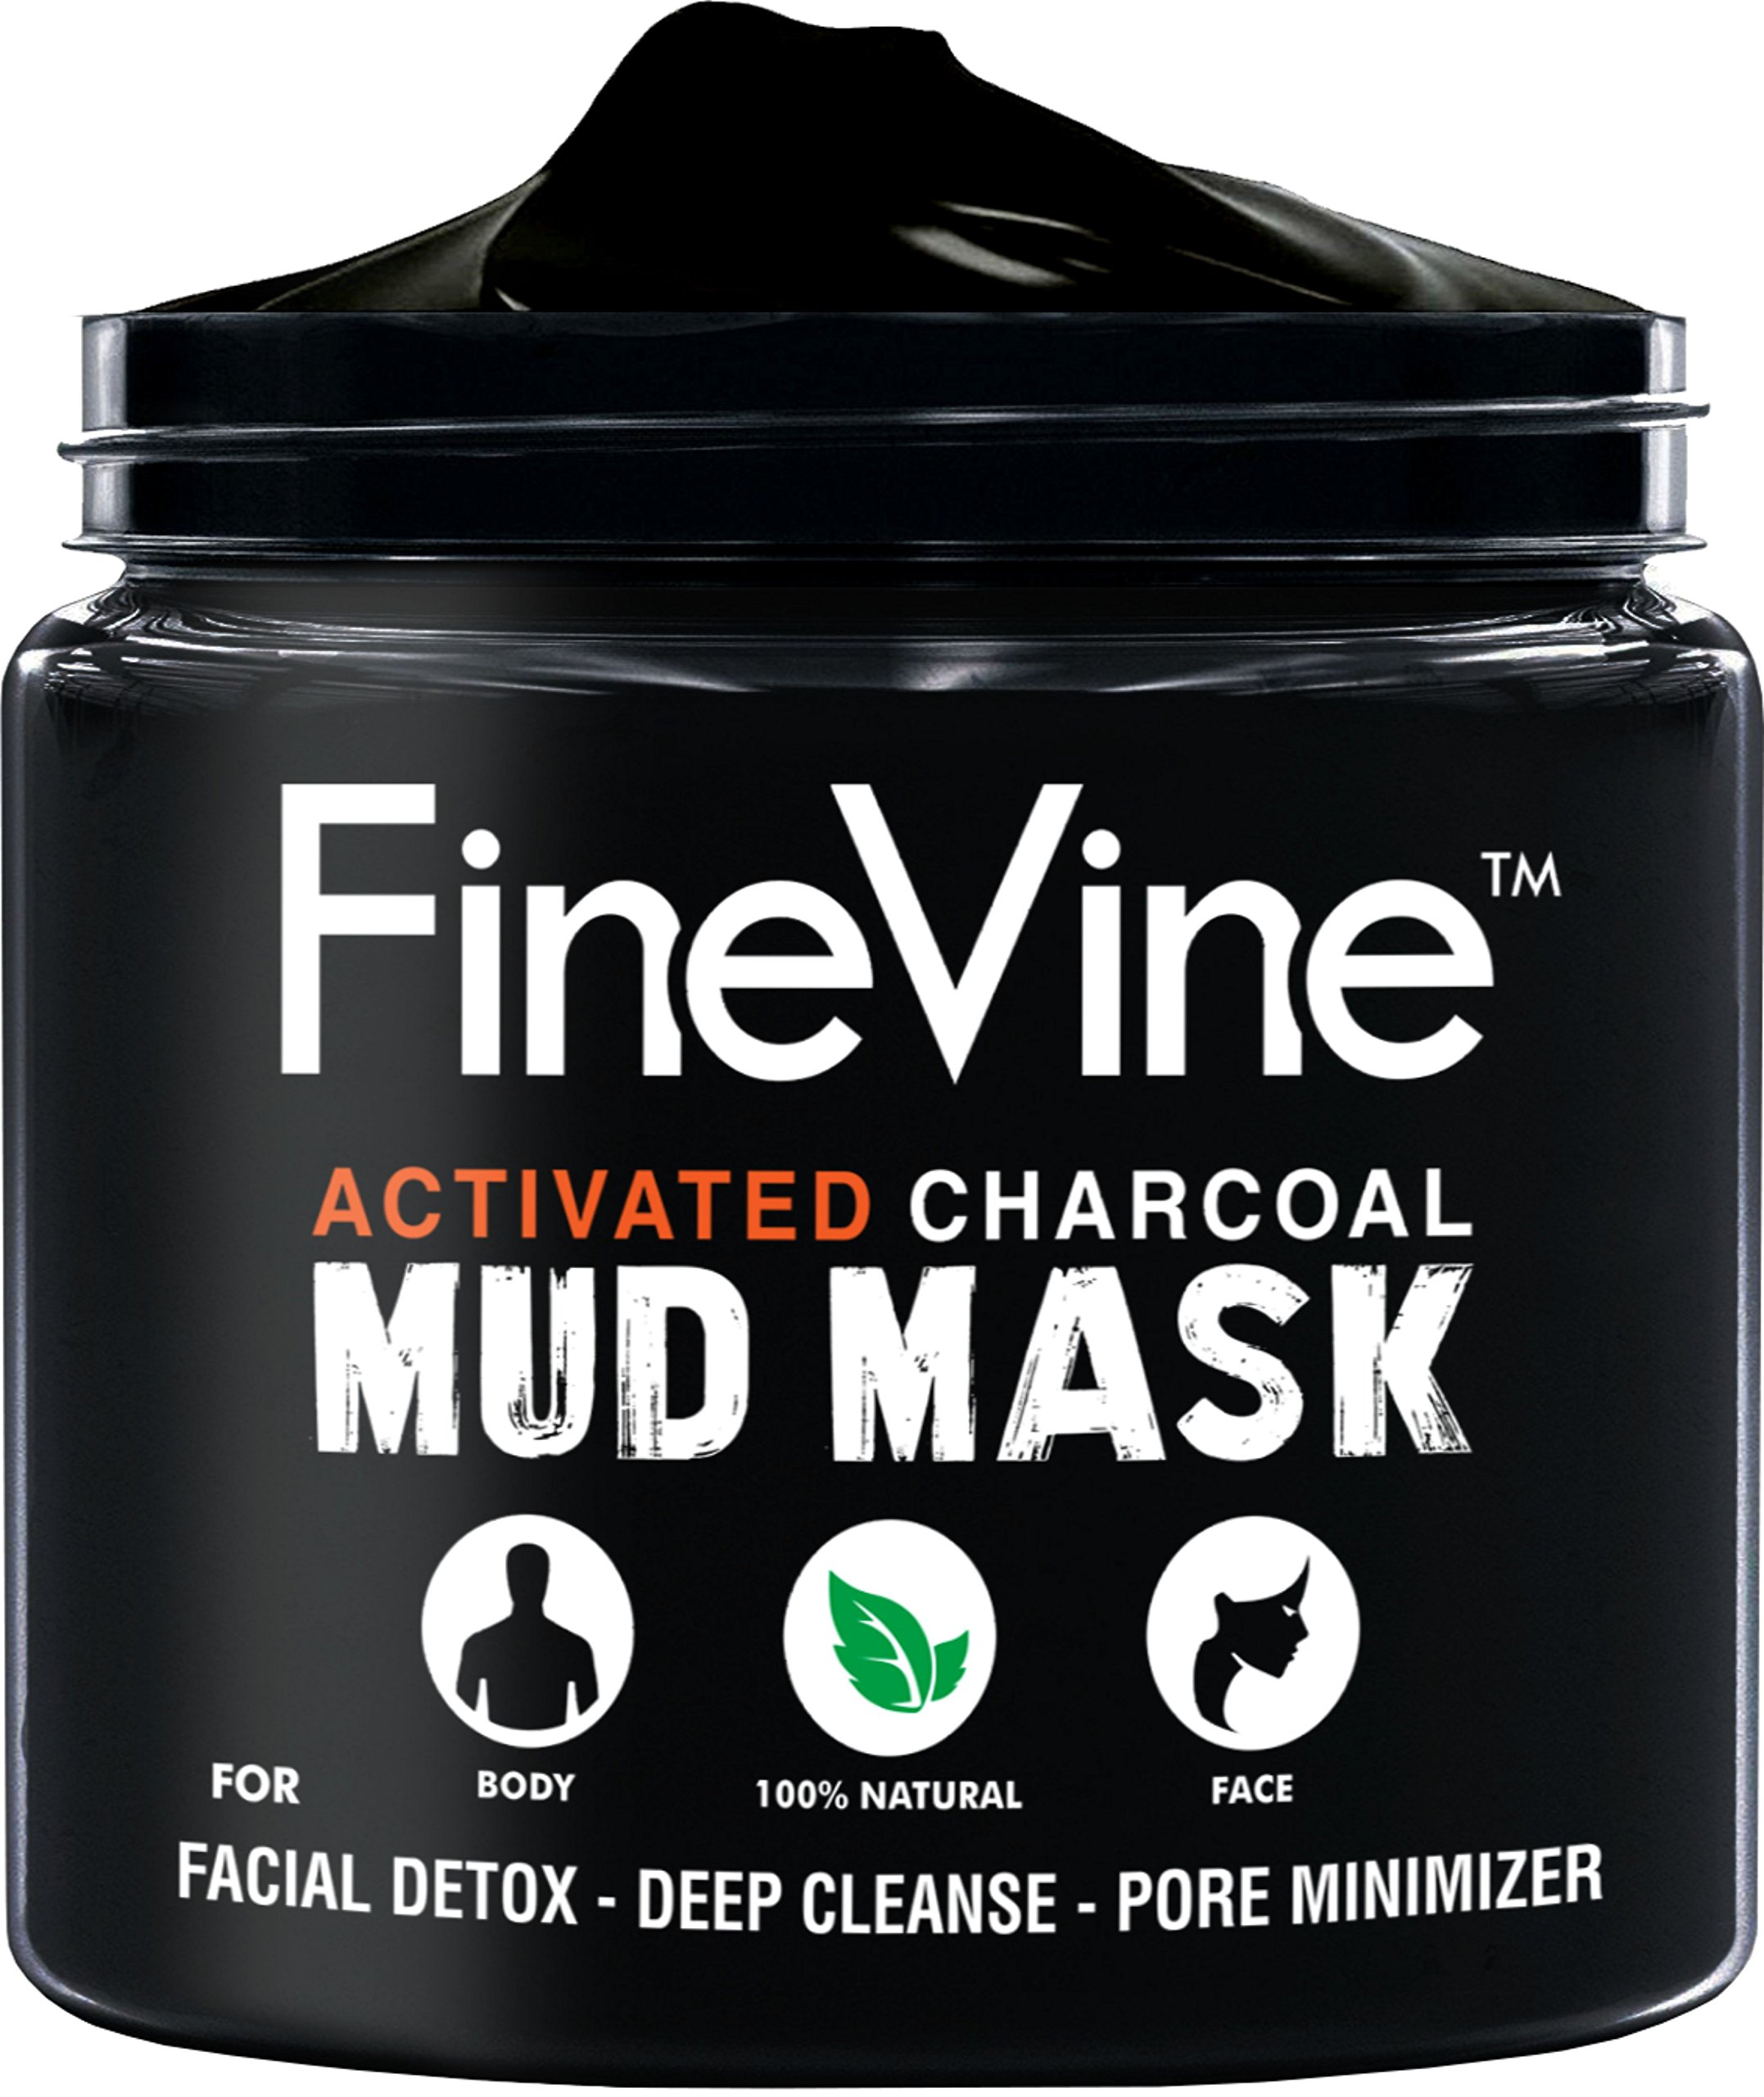 Activated Charcoal Mud Mask - Made in USA - For Deep Cleansing & Exfoliation, Pore Minimizer & Reduces Wrinkles, Acne Scars, Blackhead Remover & Anti Cellulite Treatment, Face Mask & Facial Cleanser. by FineVine